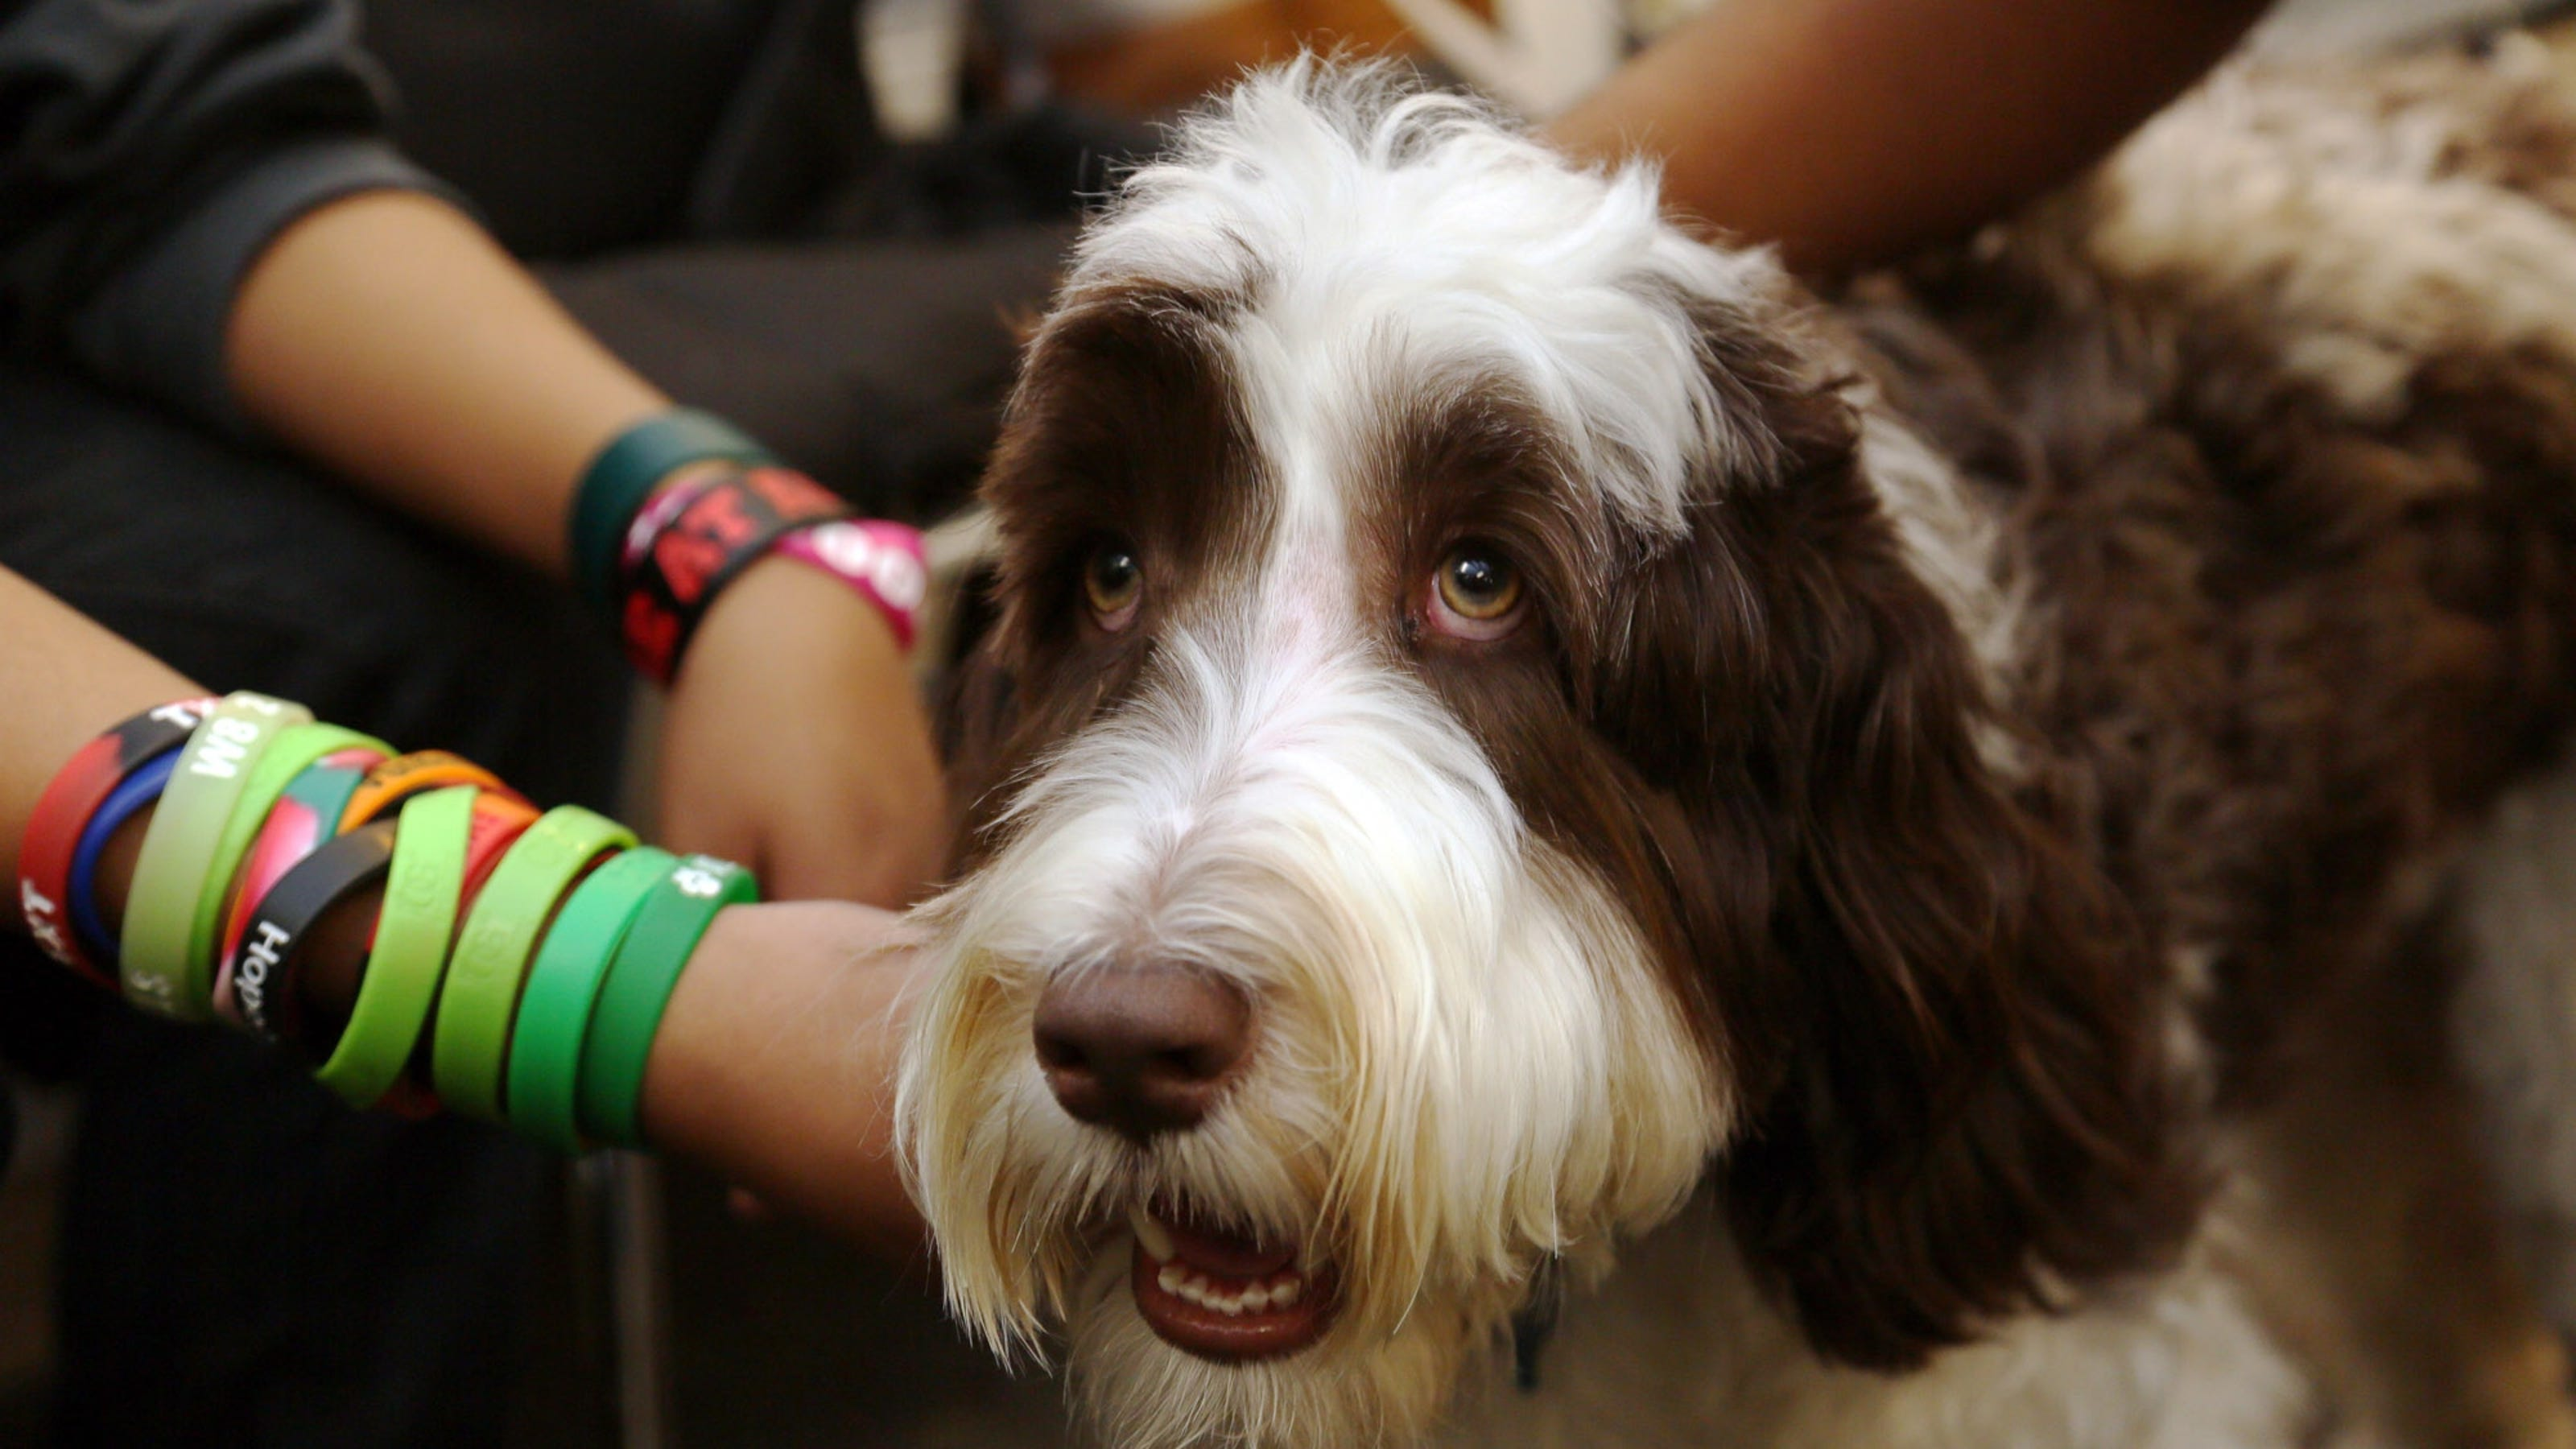 Therapy dogs help calm people under stress